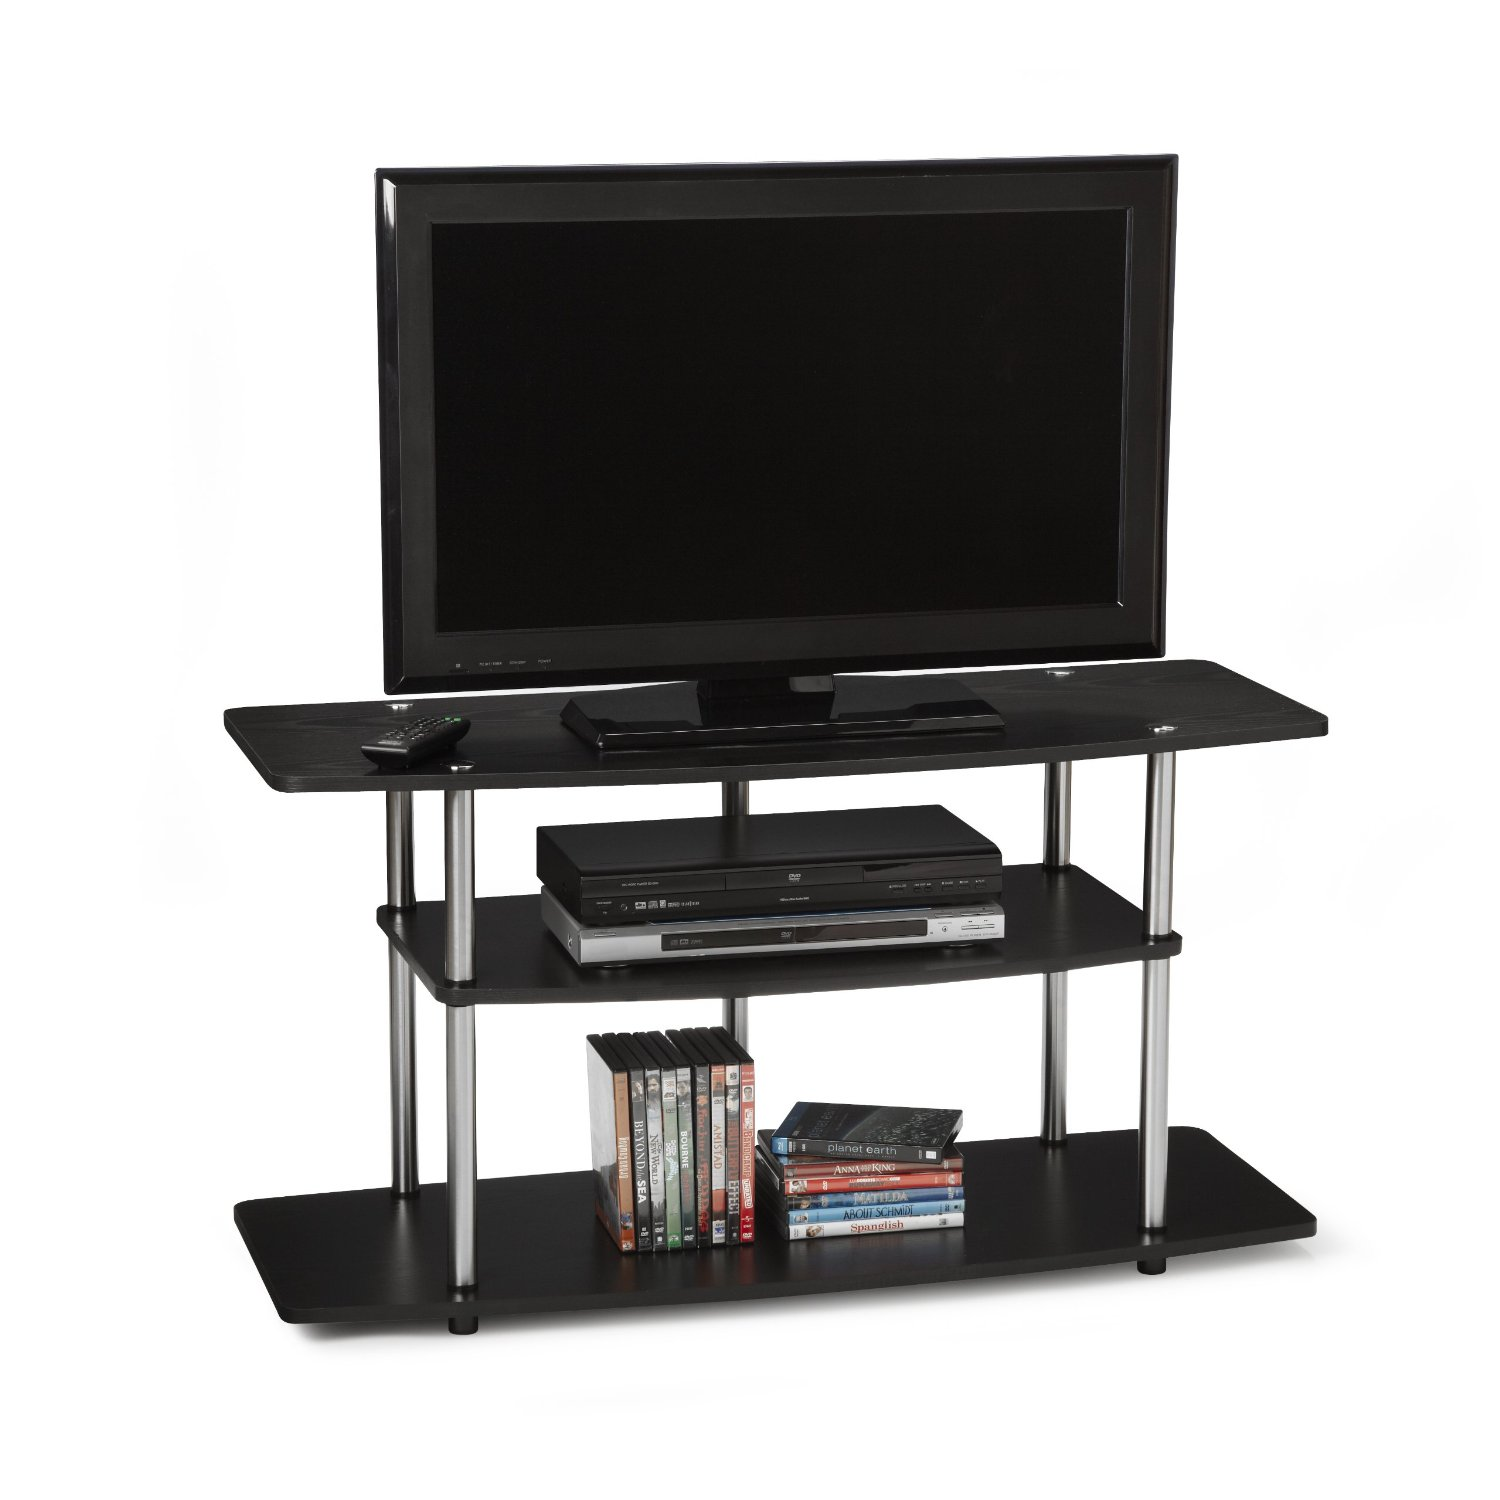 Homedesign Television Stands Amp Entertainment Centers